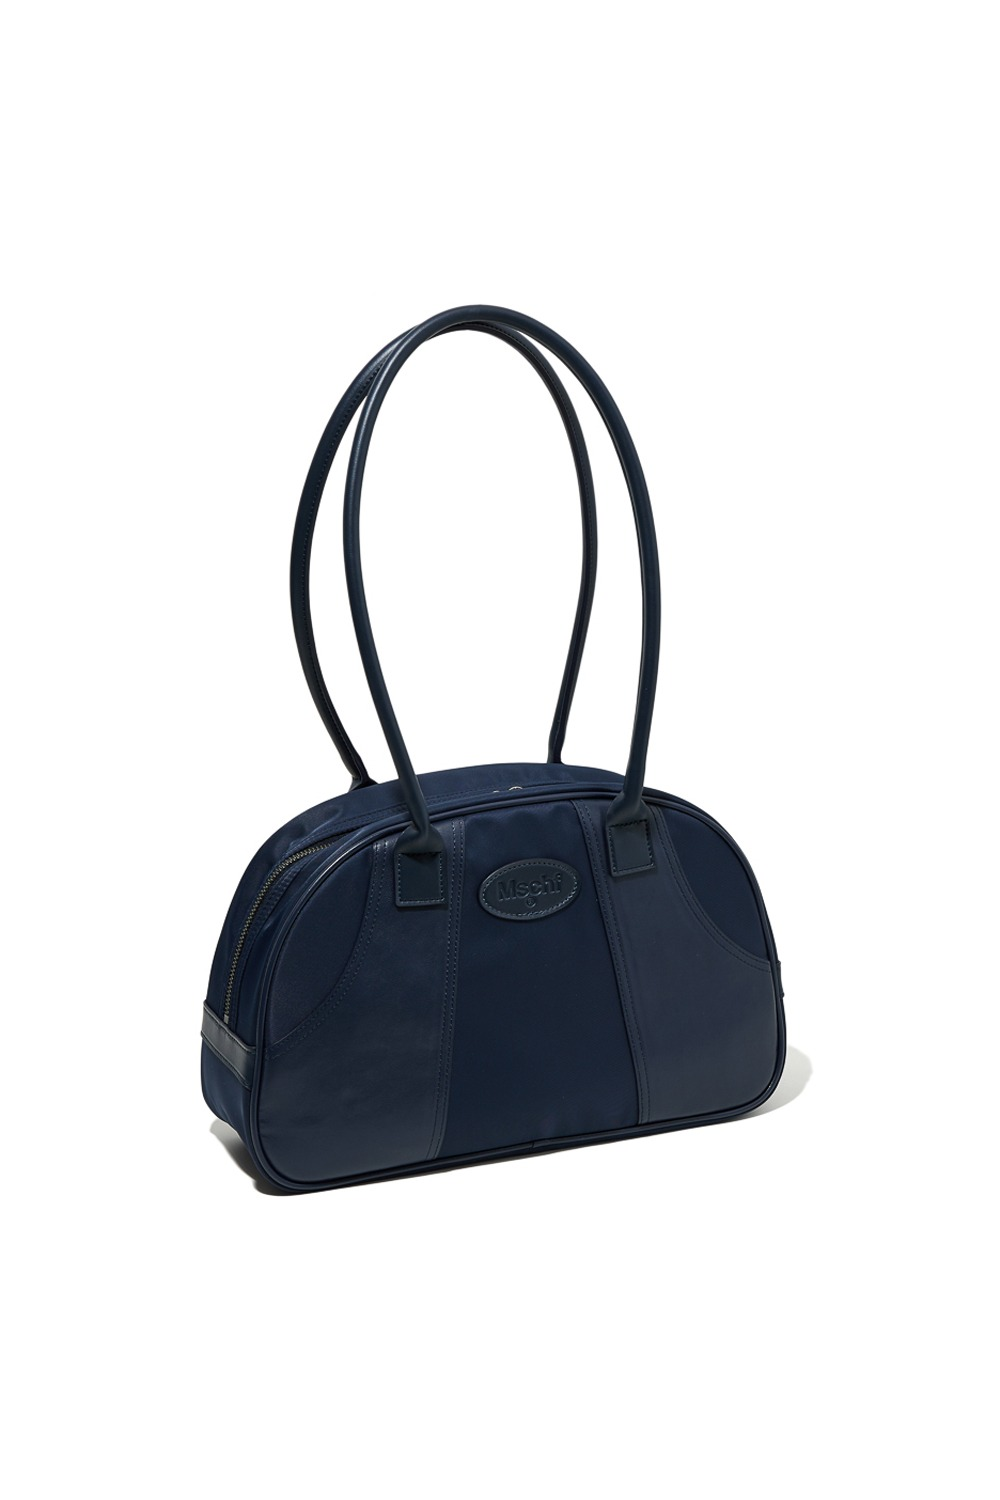 2021 CALL OUT_MULTI-PANEL BOWLING BAG_NAVY